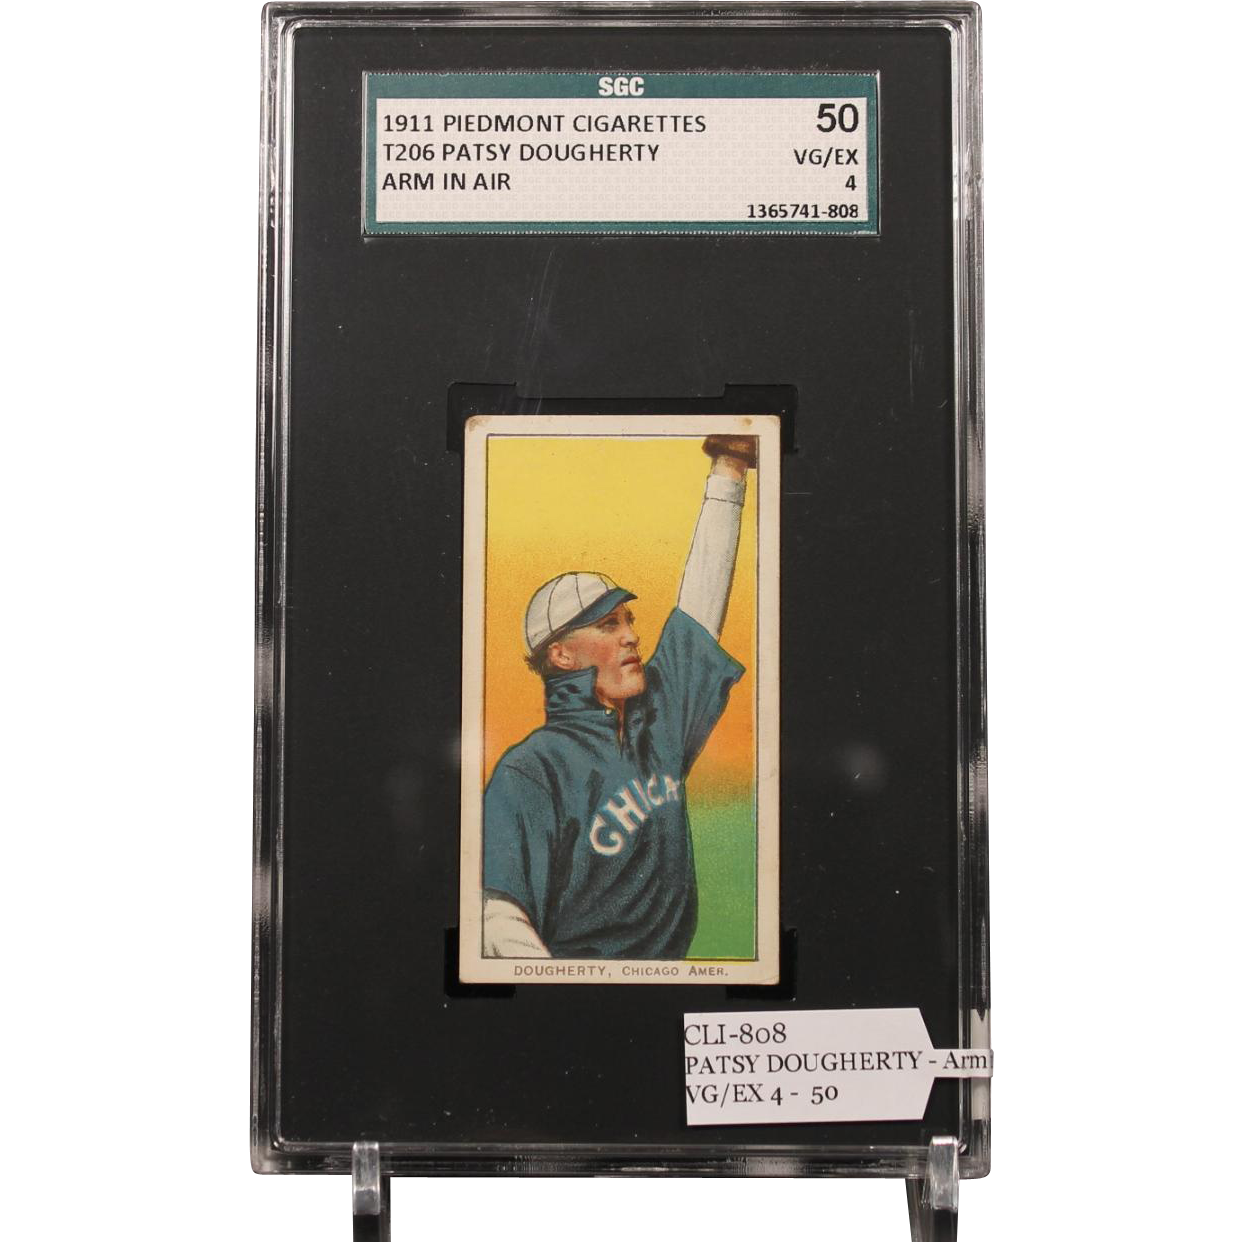 T206 PATSY DOUGHERTY - Arm in Air SGC grade 50 VG/EX 4